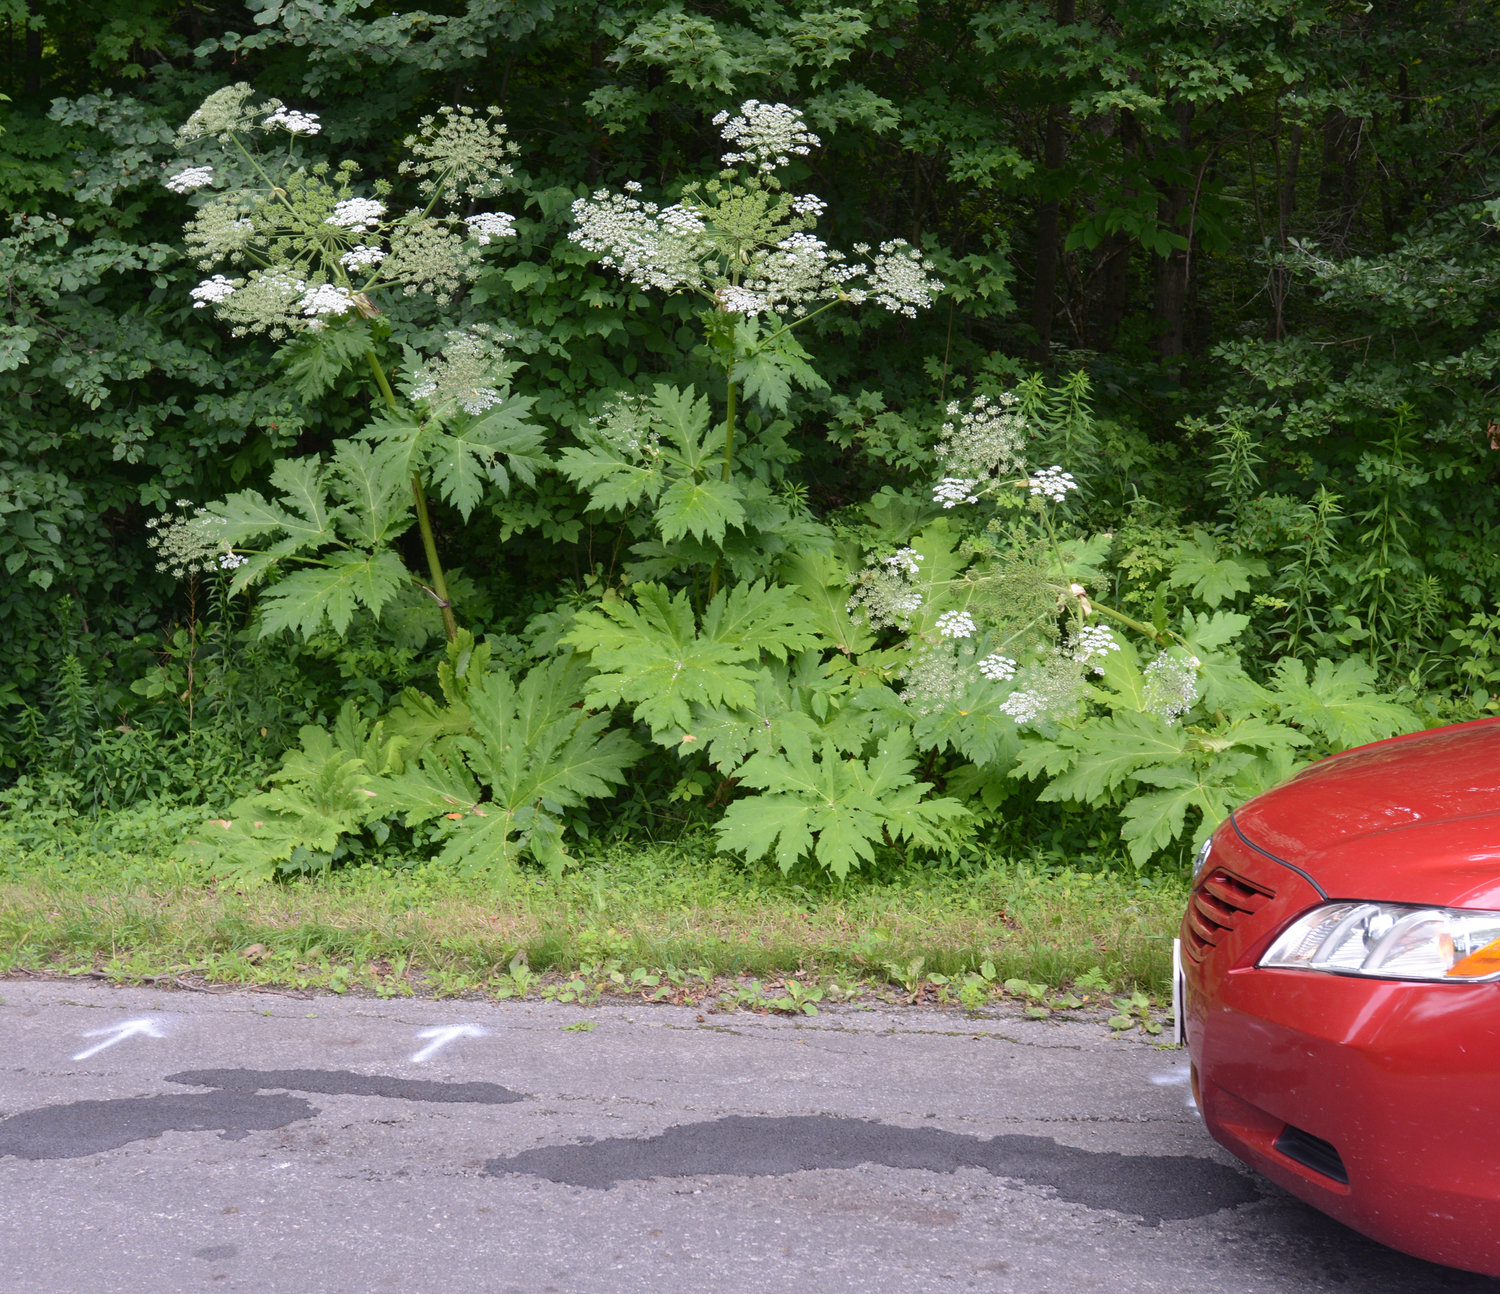 BEWARE OF HOGWEED — A  growth of noxious giant hogweed grows on the west side of Capron Road in the Town of Lee, in this file photo. Giant hogweed is a hazardous plant and should be avoided, officials warn.